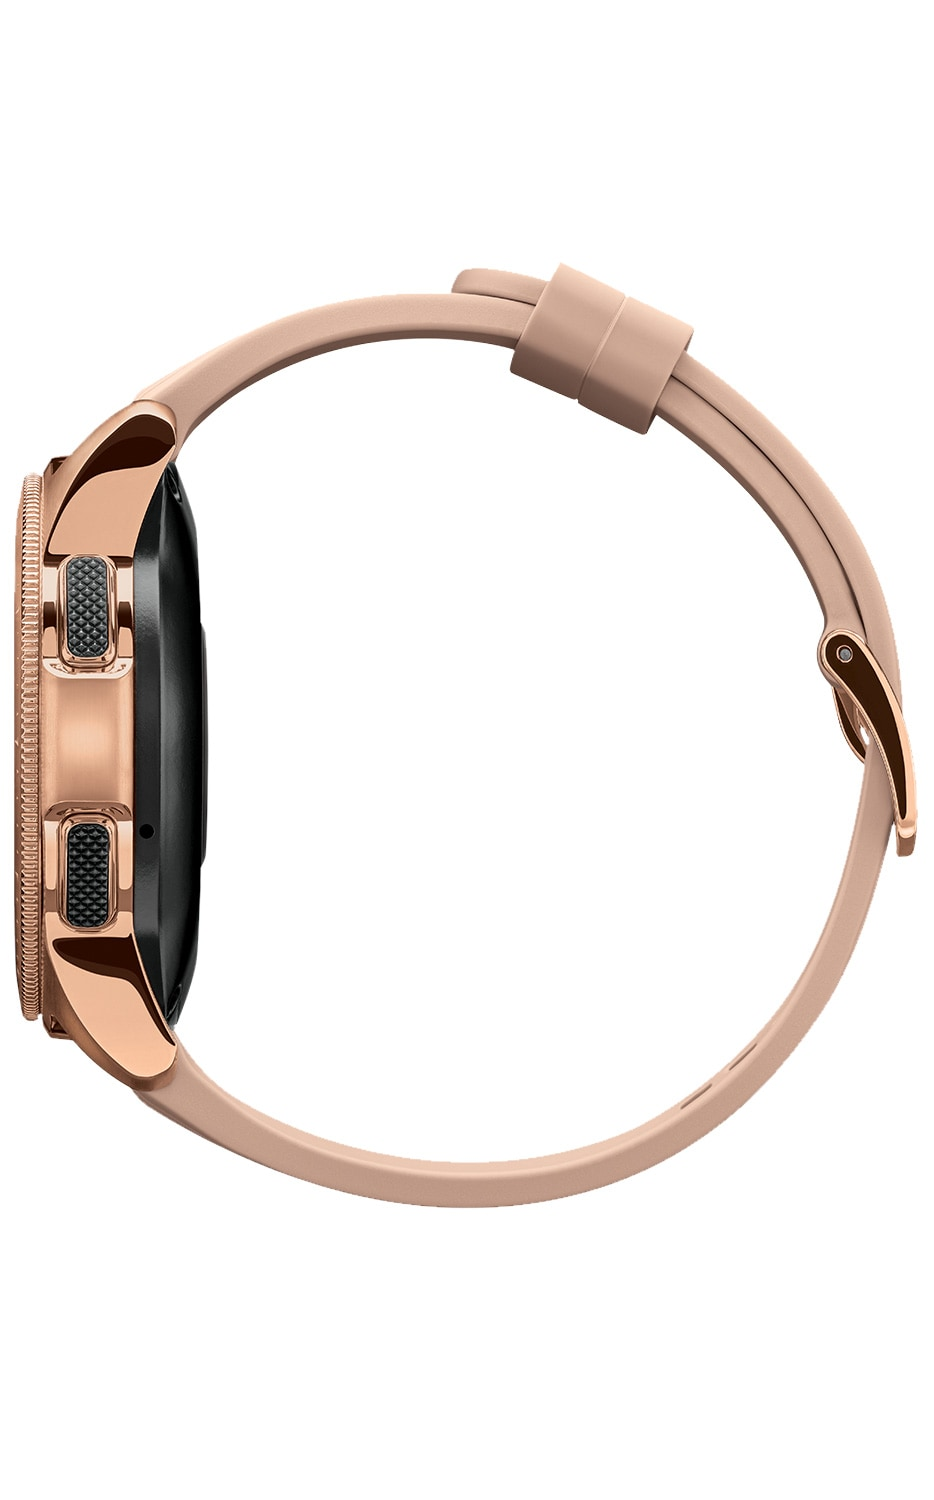 Samsung Galaxy Watch 42mm Smart Watches At T Mobile